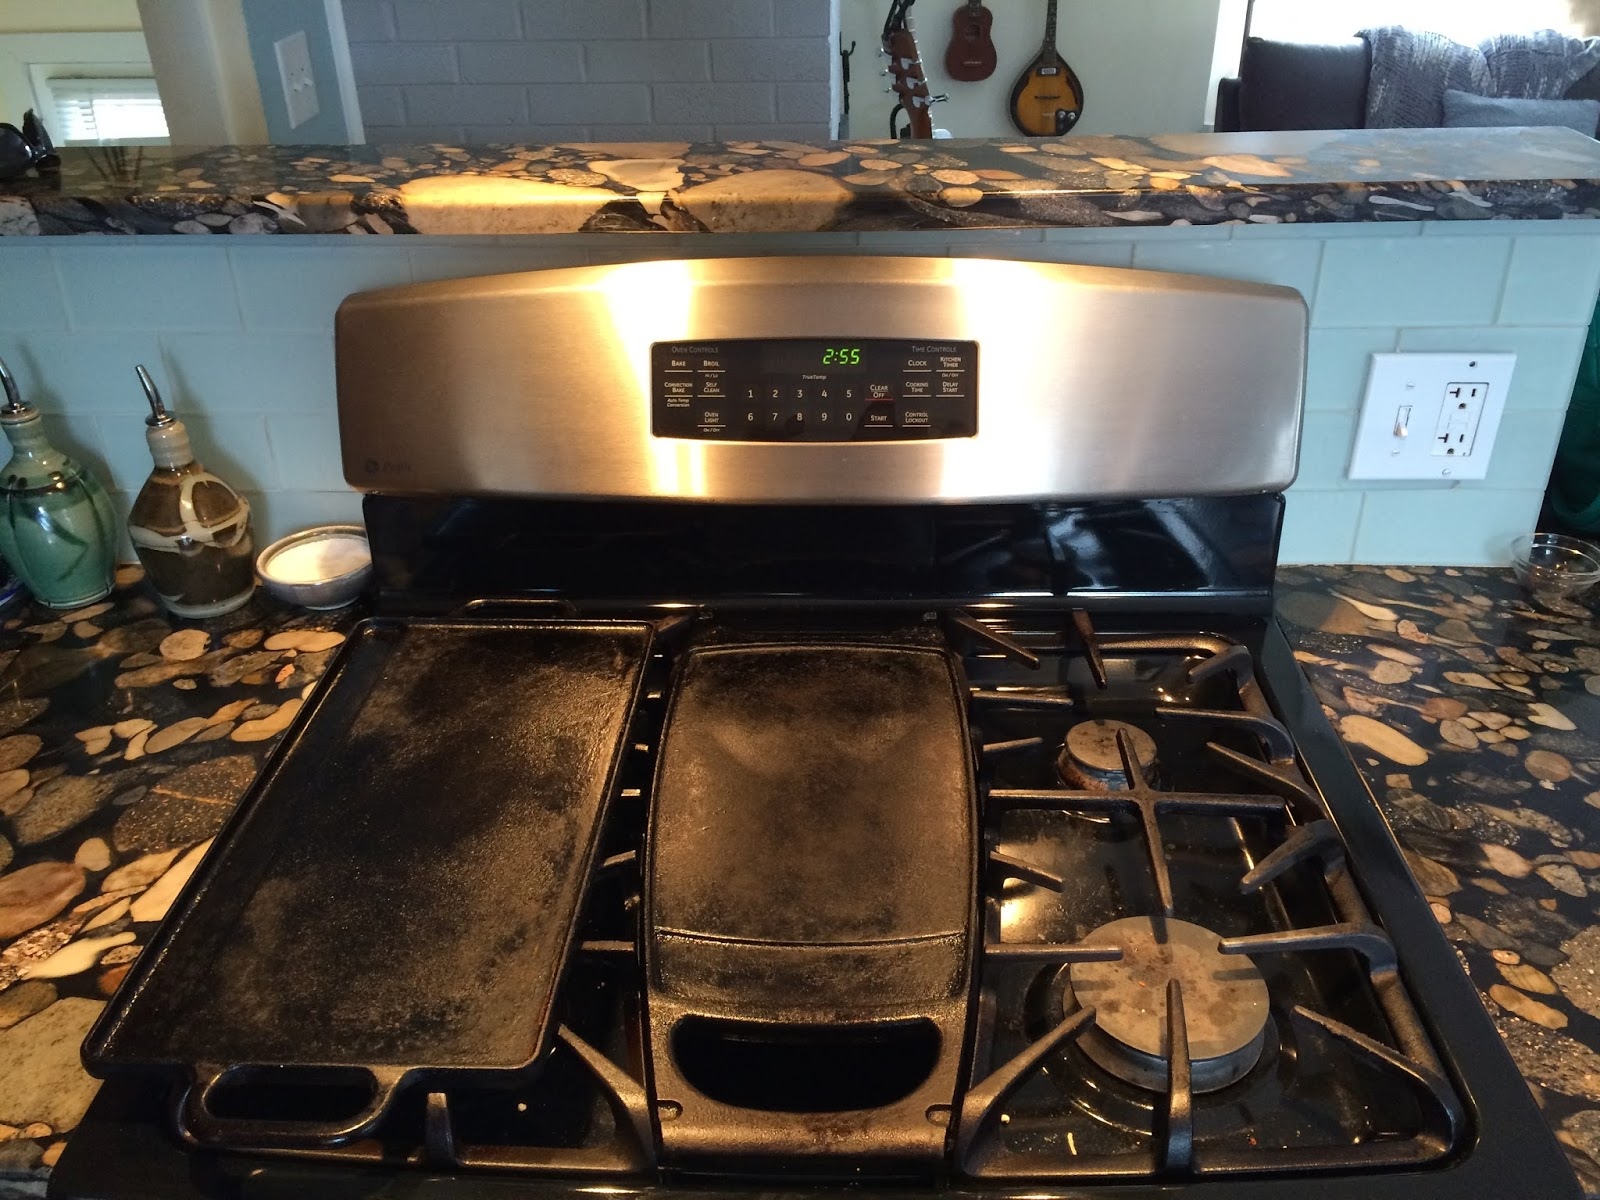 Stove With Griddle In The Middle ~ Derek on cast iron recipes